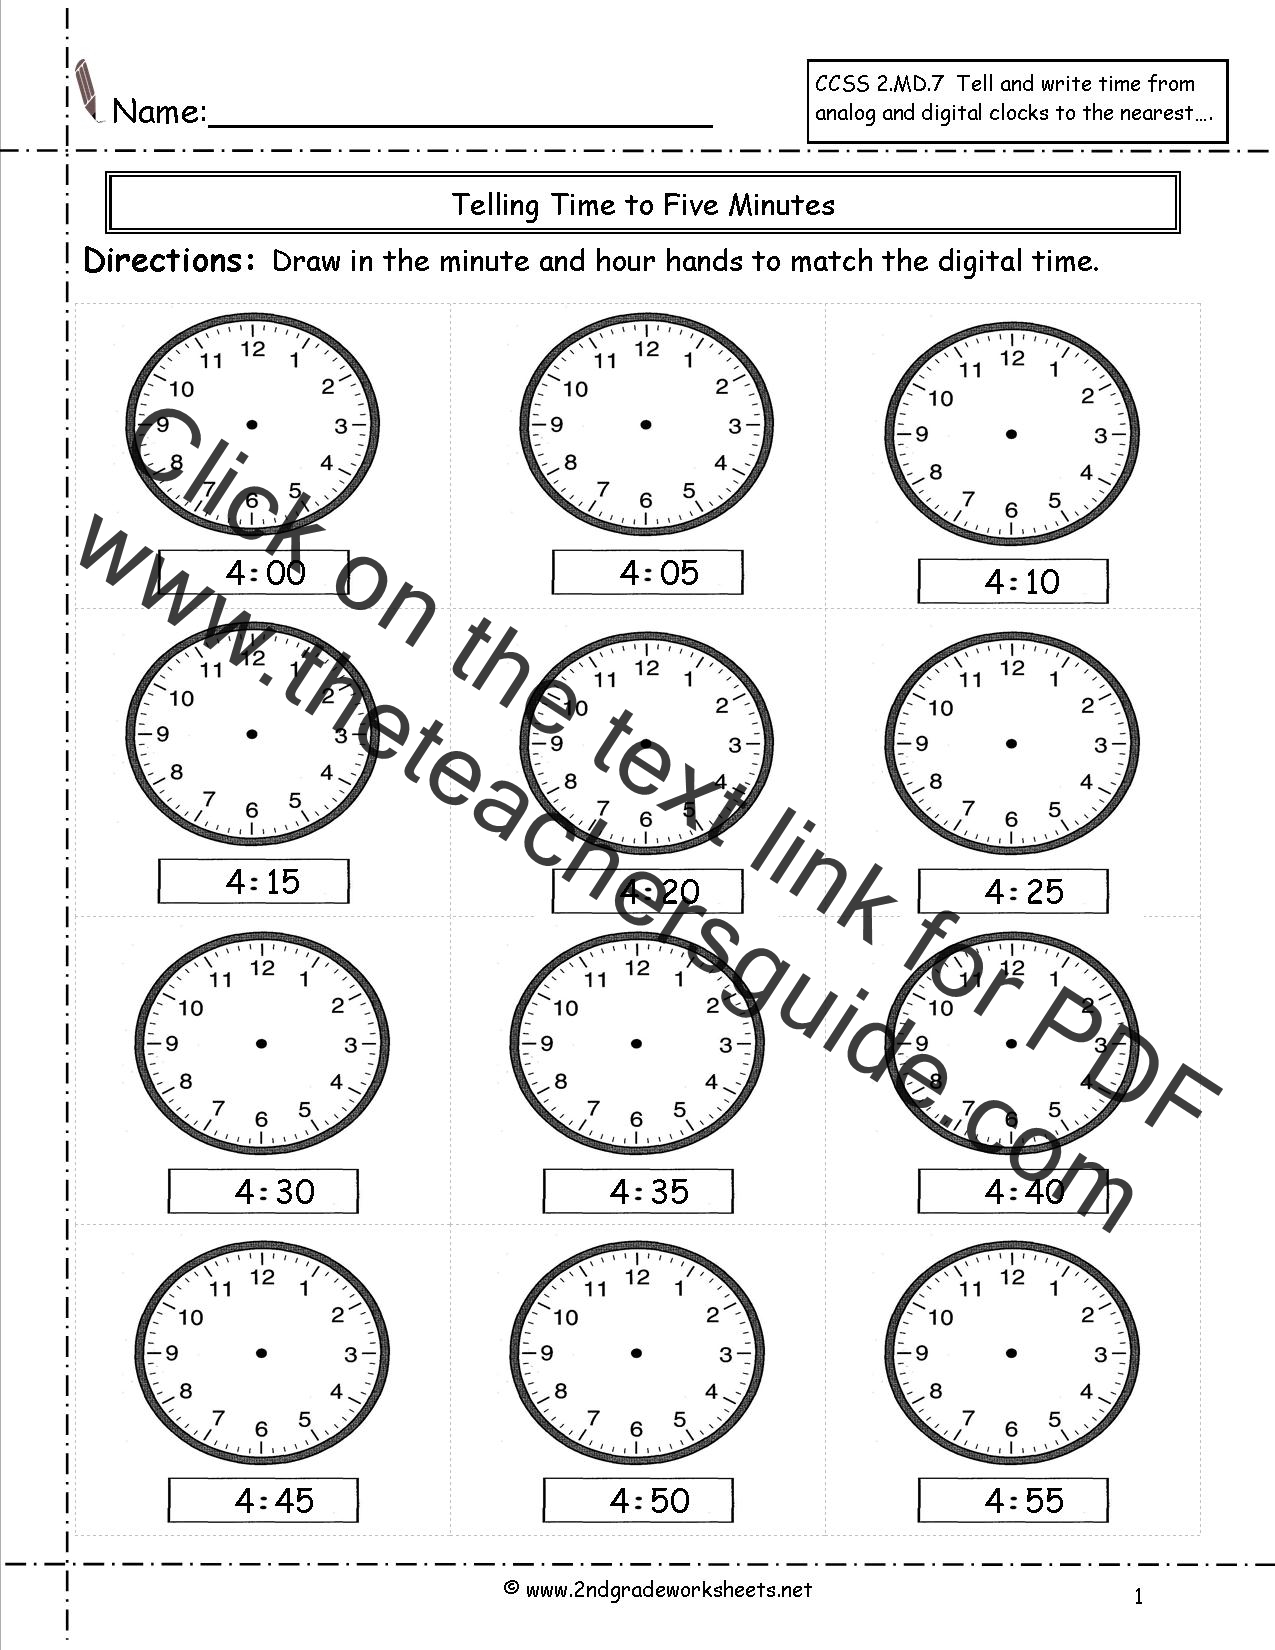 worksheet Digital Clock Worksheets ccss 2 md 7 worksheets telling time to five minutes worksheets